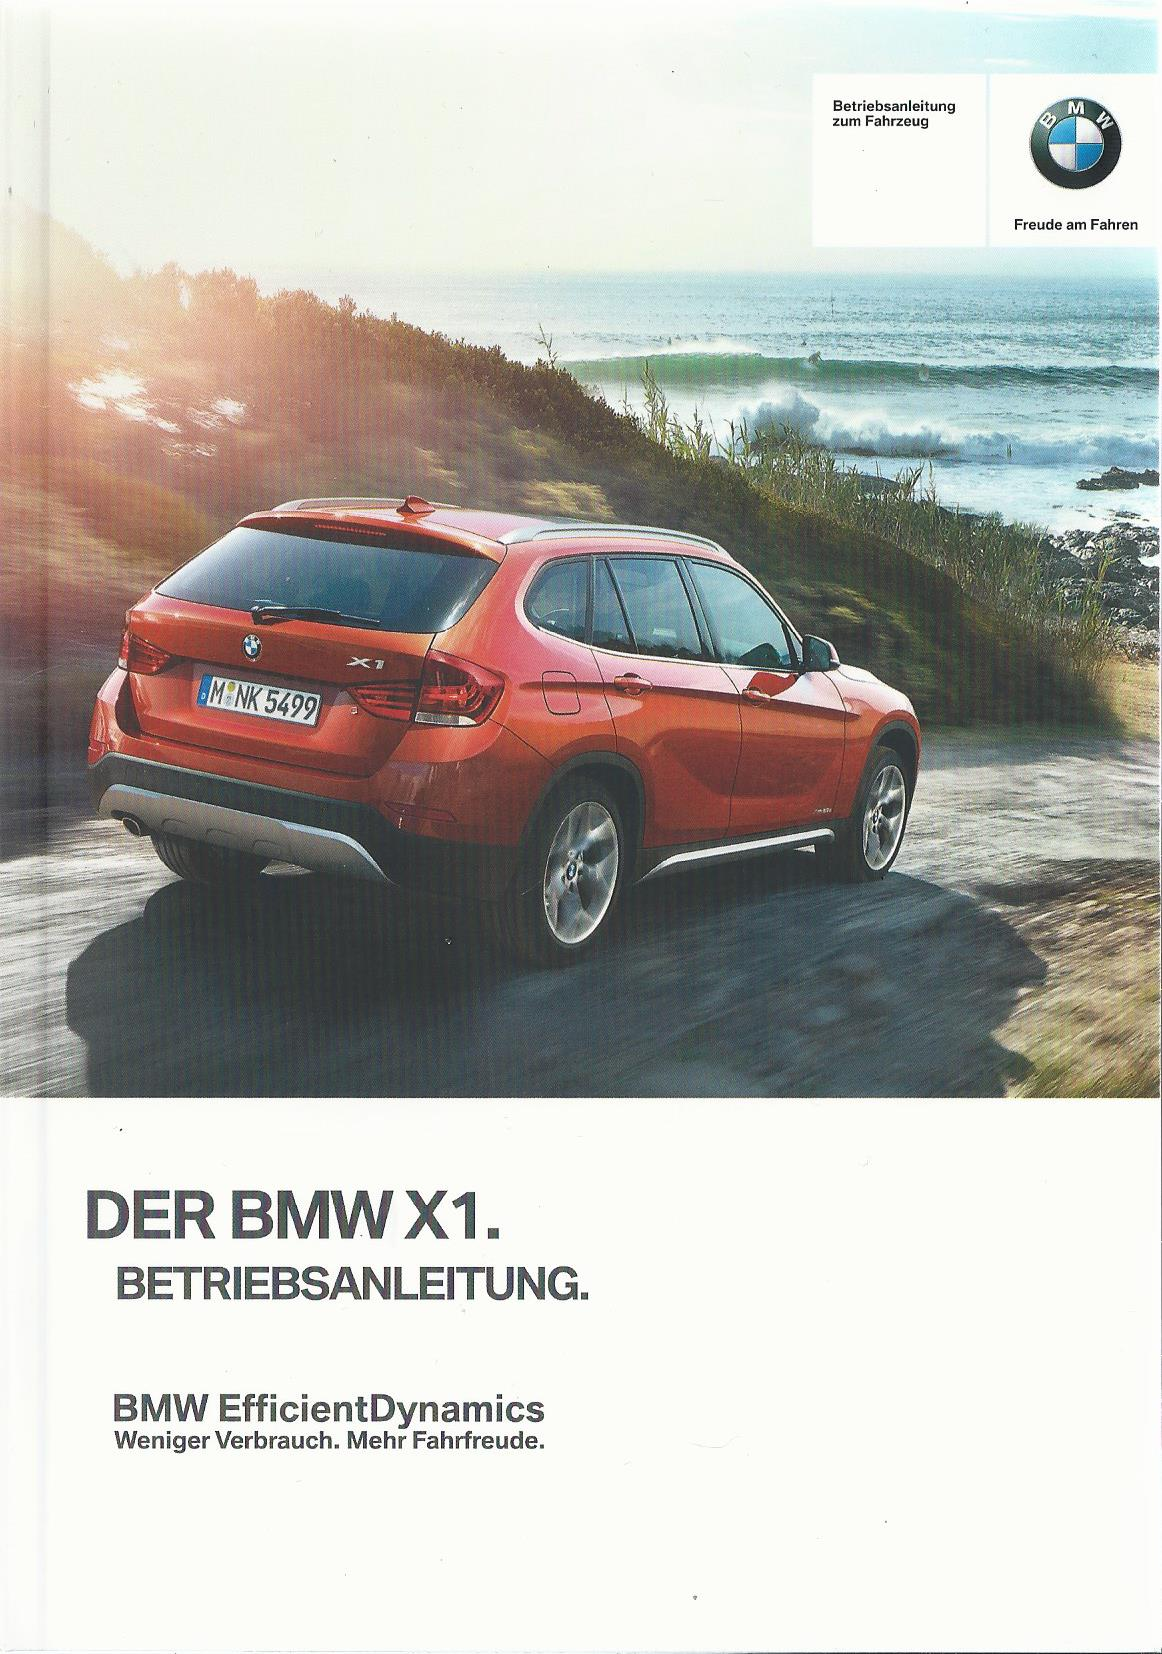 bmw x1 e84 betriebsanleitung 2014 2015 bedienungsanleitung handbuch bordbuch ba ebay. Black Bedroom Furniture Sets. Home Design Ideas